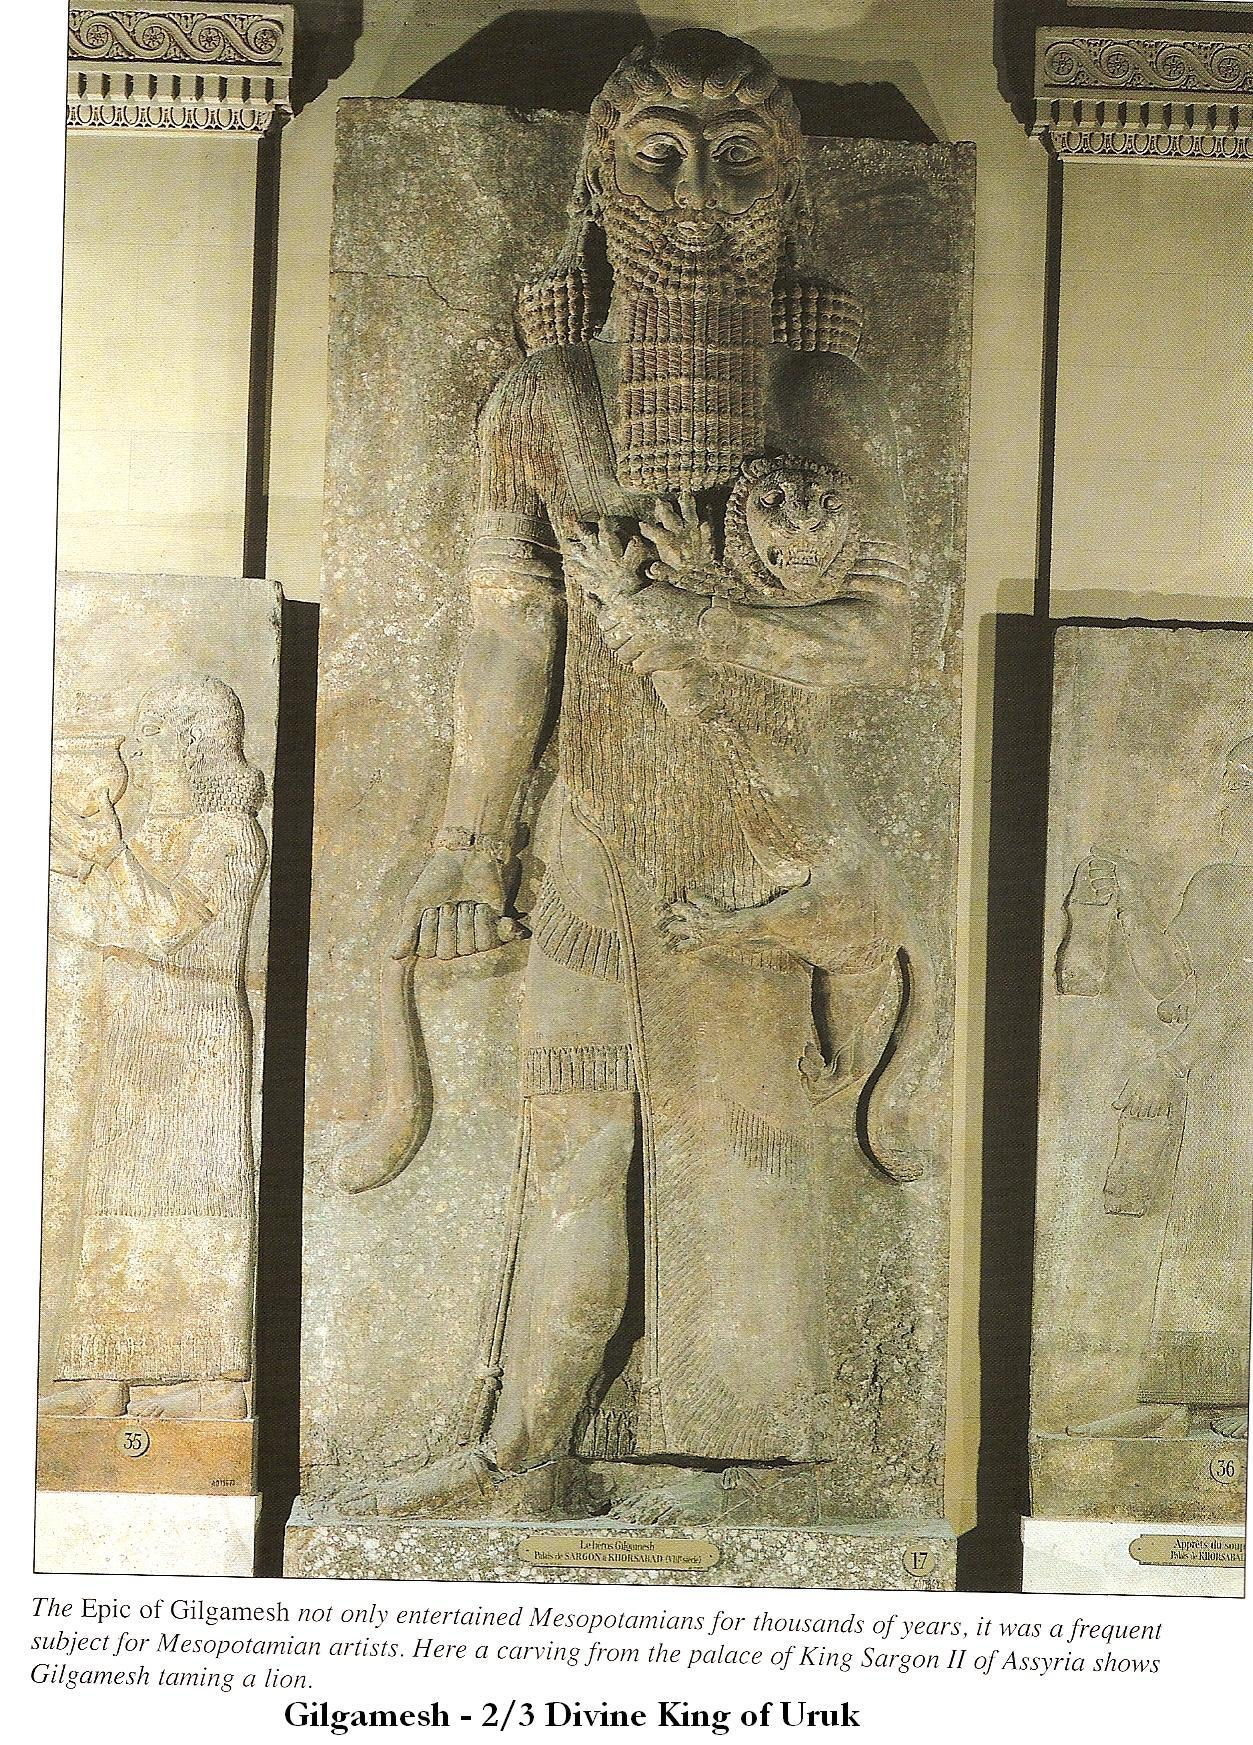 6aa - giant Uruk King Gilgamesh, two-thirds divine, one of many giant mixed-breed sons of Ninsun & her mixed-breed spouse Lugalbanda, Lugalbanda was king of Uruk for 1,200 years, son Gilgamesh ruled 126 years, they were much bigger, stronger, faster, smarter, & lived longer than the non-mixed earthlings